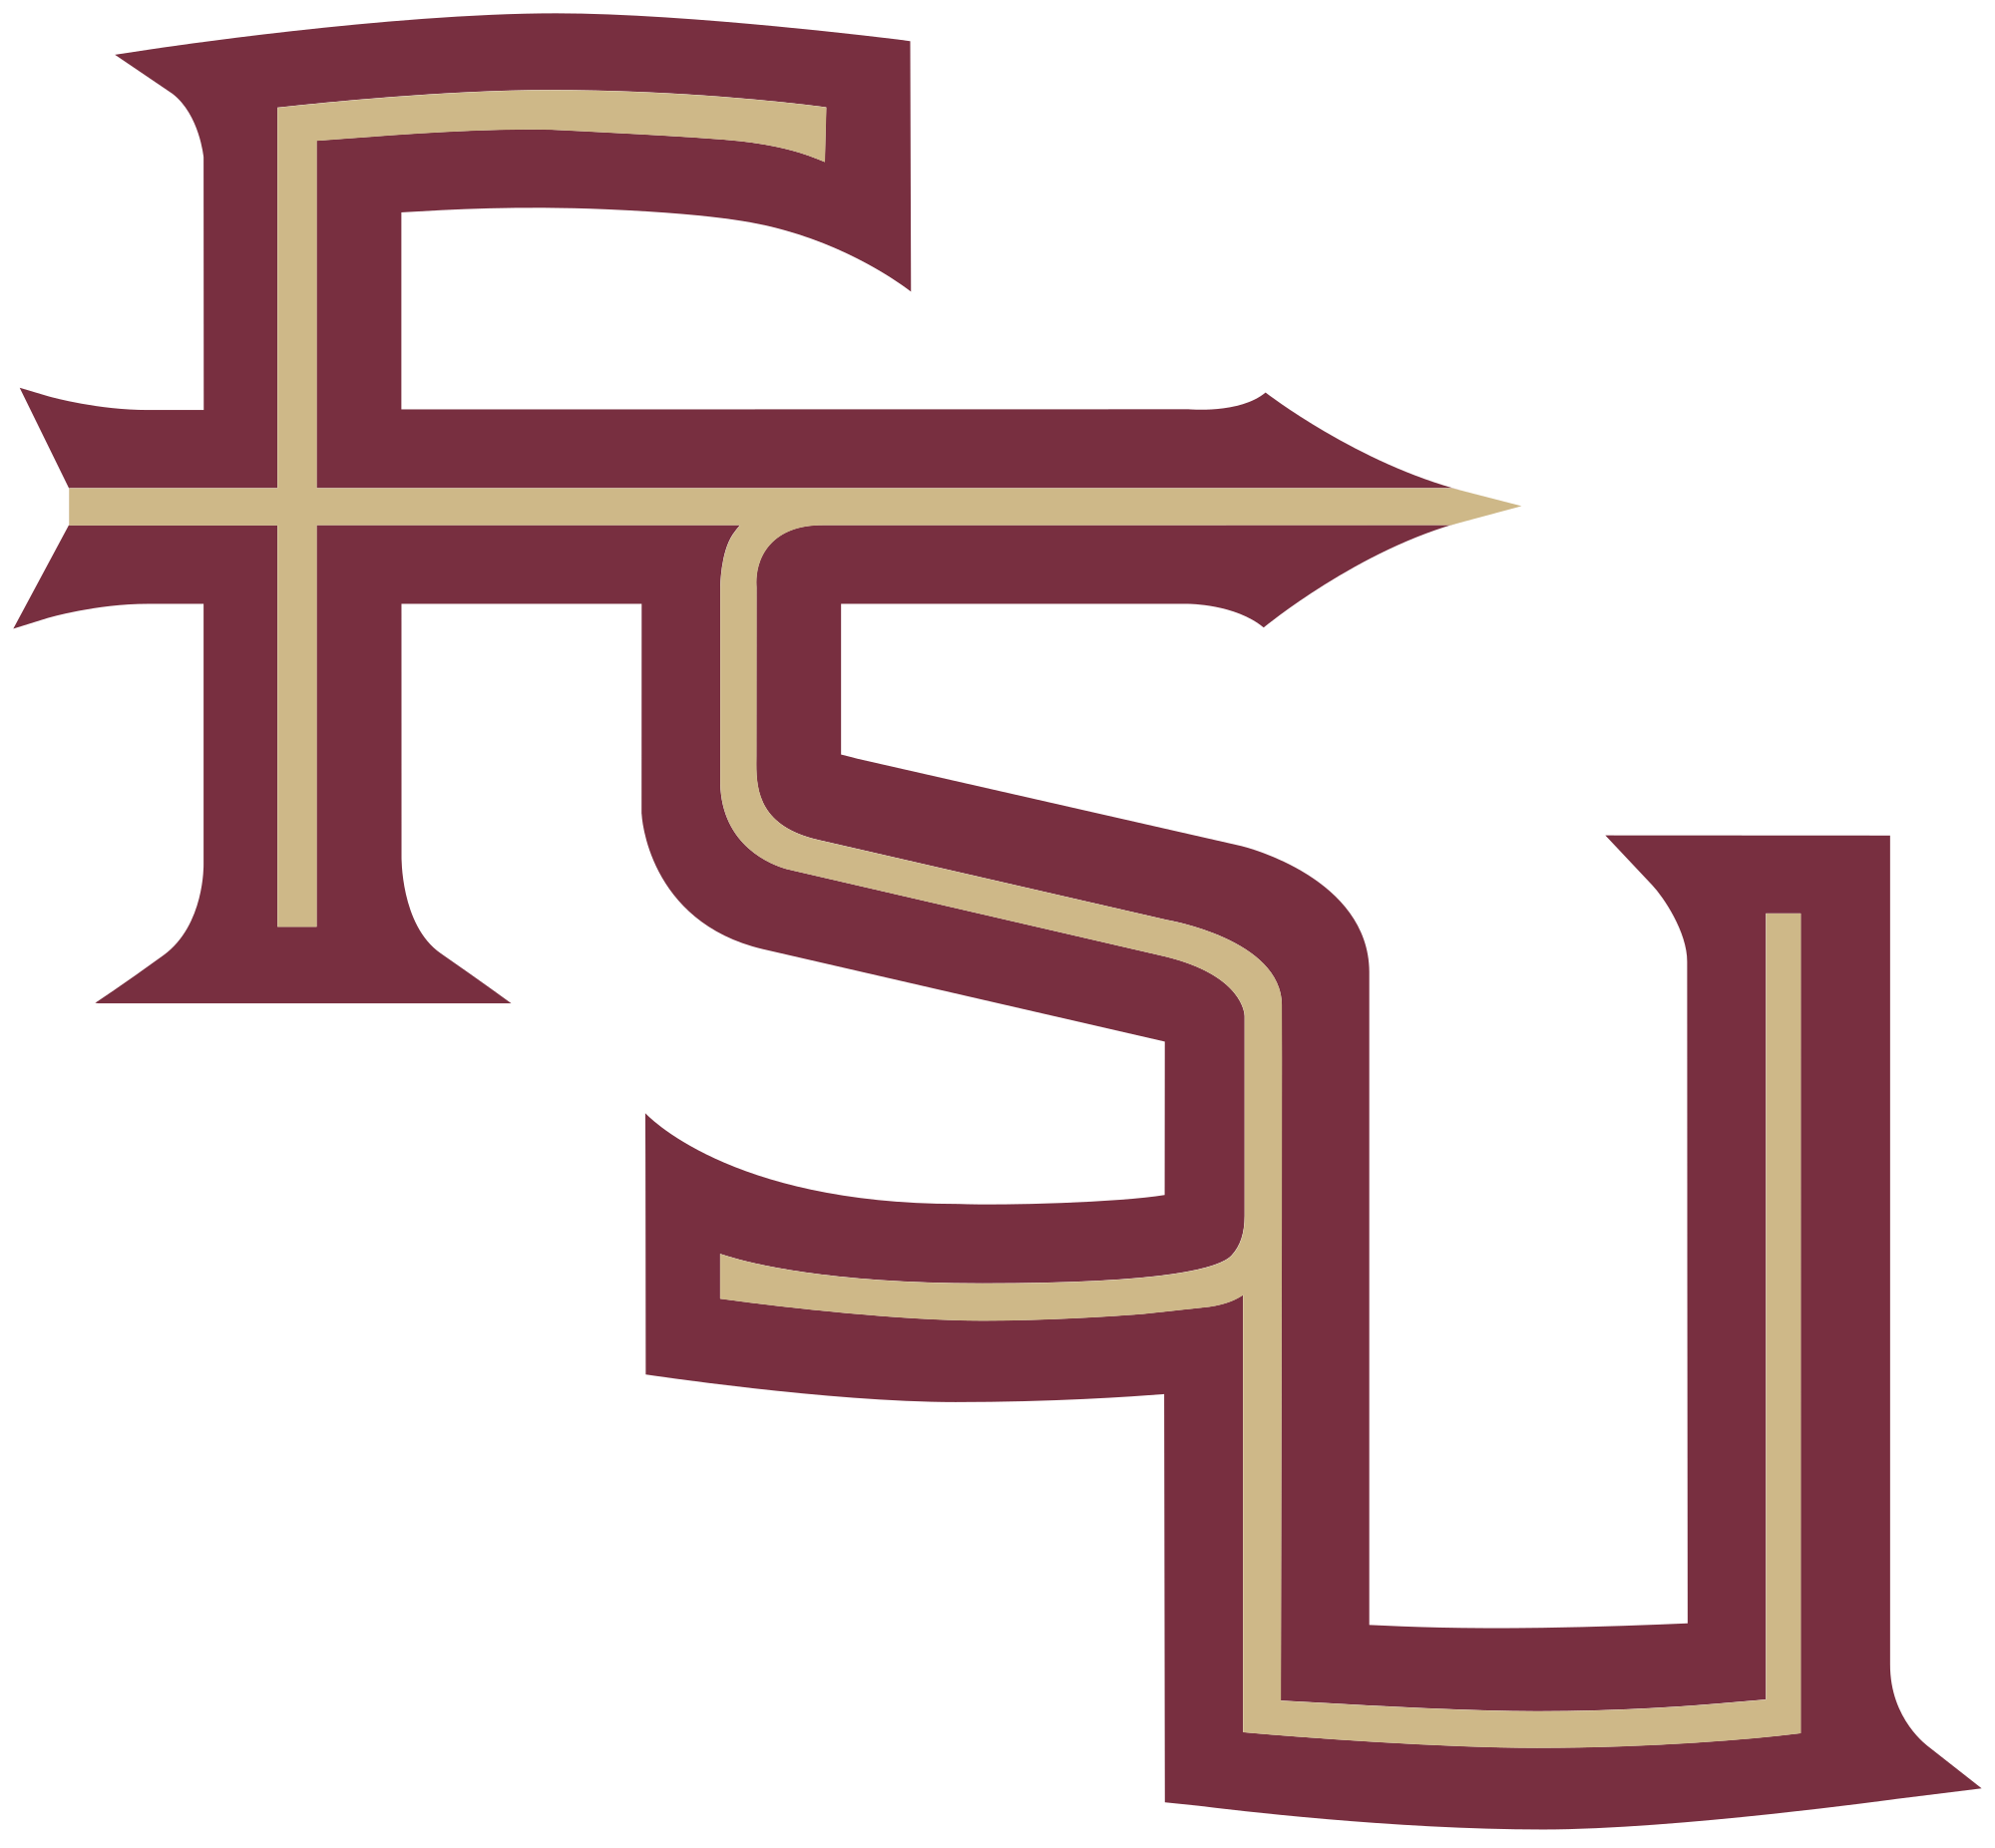 florida state university logo png